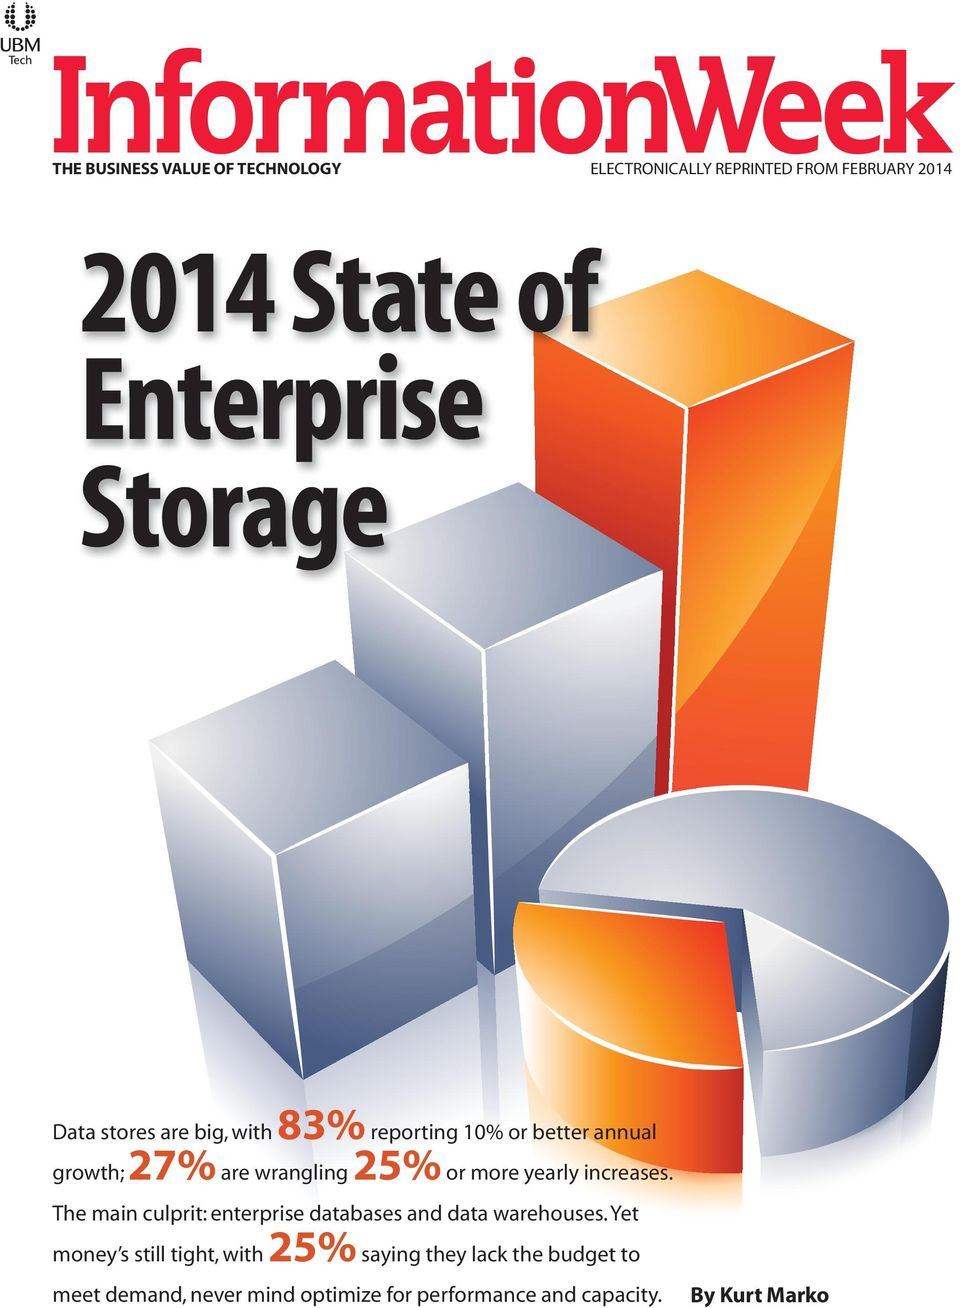 yearly increases. The main culprit: enterprise databases and data warehouses.